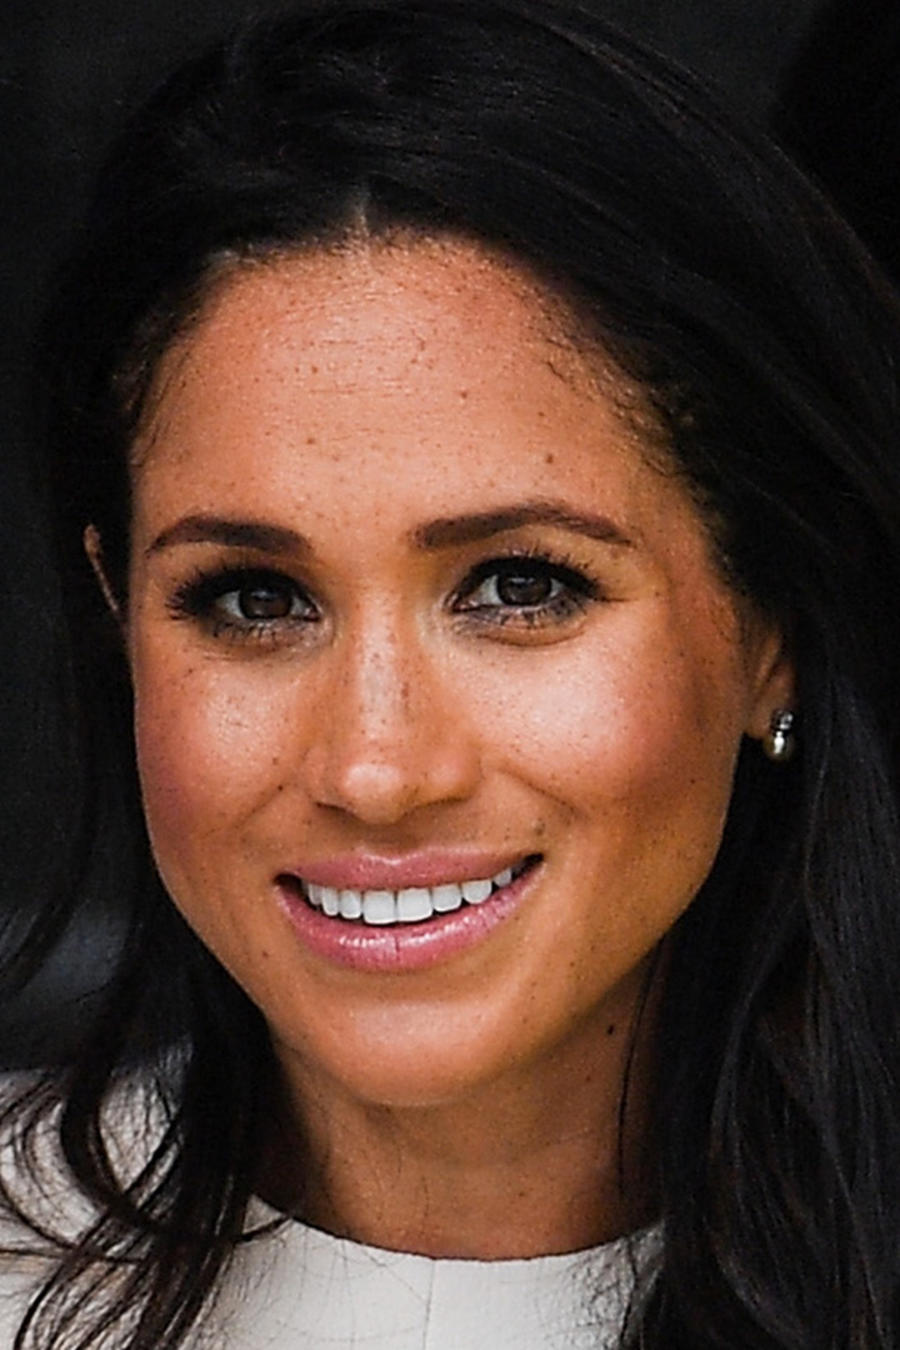 Meghan Markle en la ceremonia de apertura del Mersey Gateway Bridge en junio de 2018